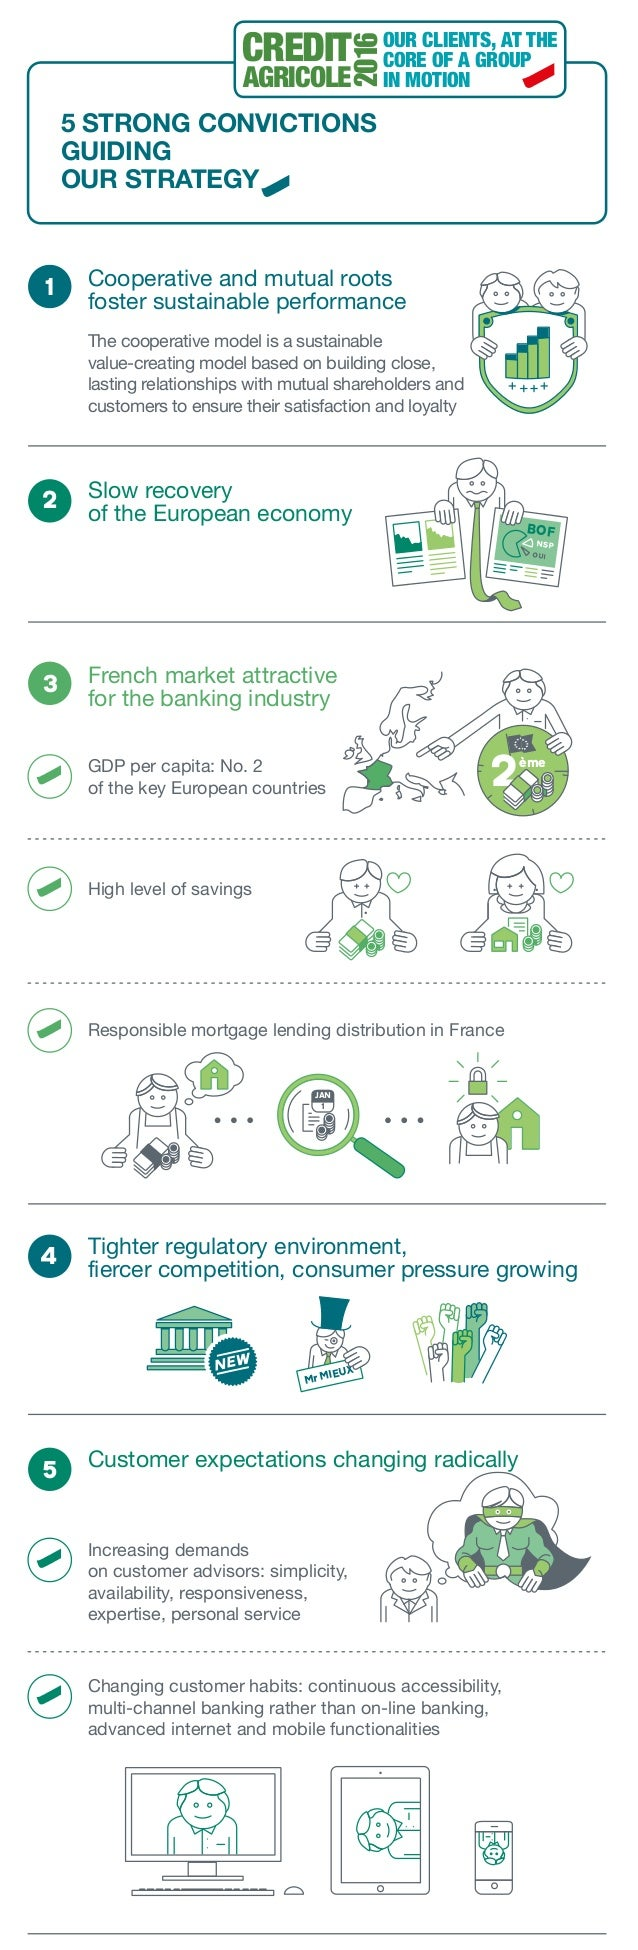 Credit agricole 2016 : 5 strong convictions guiding our strategy